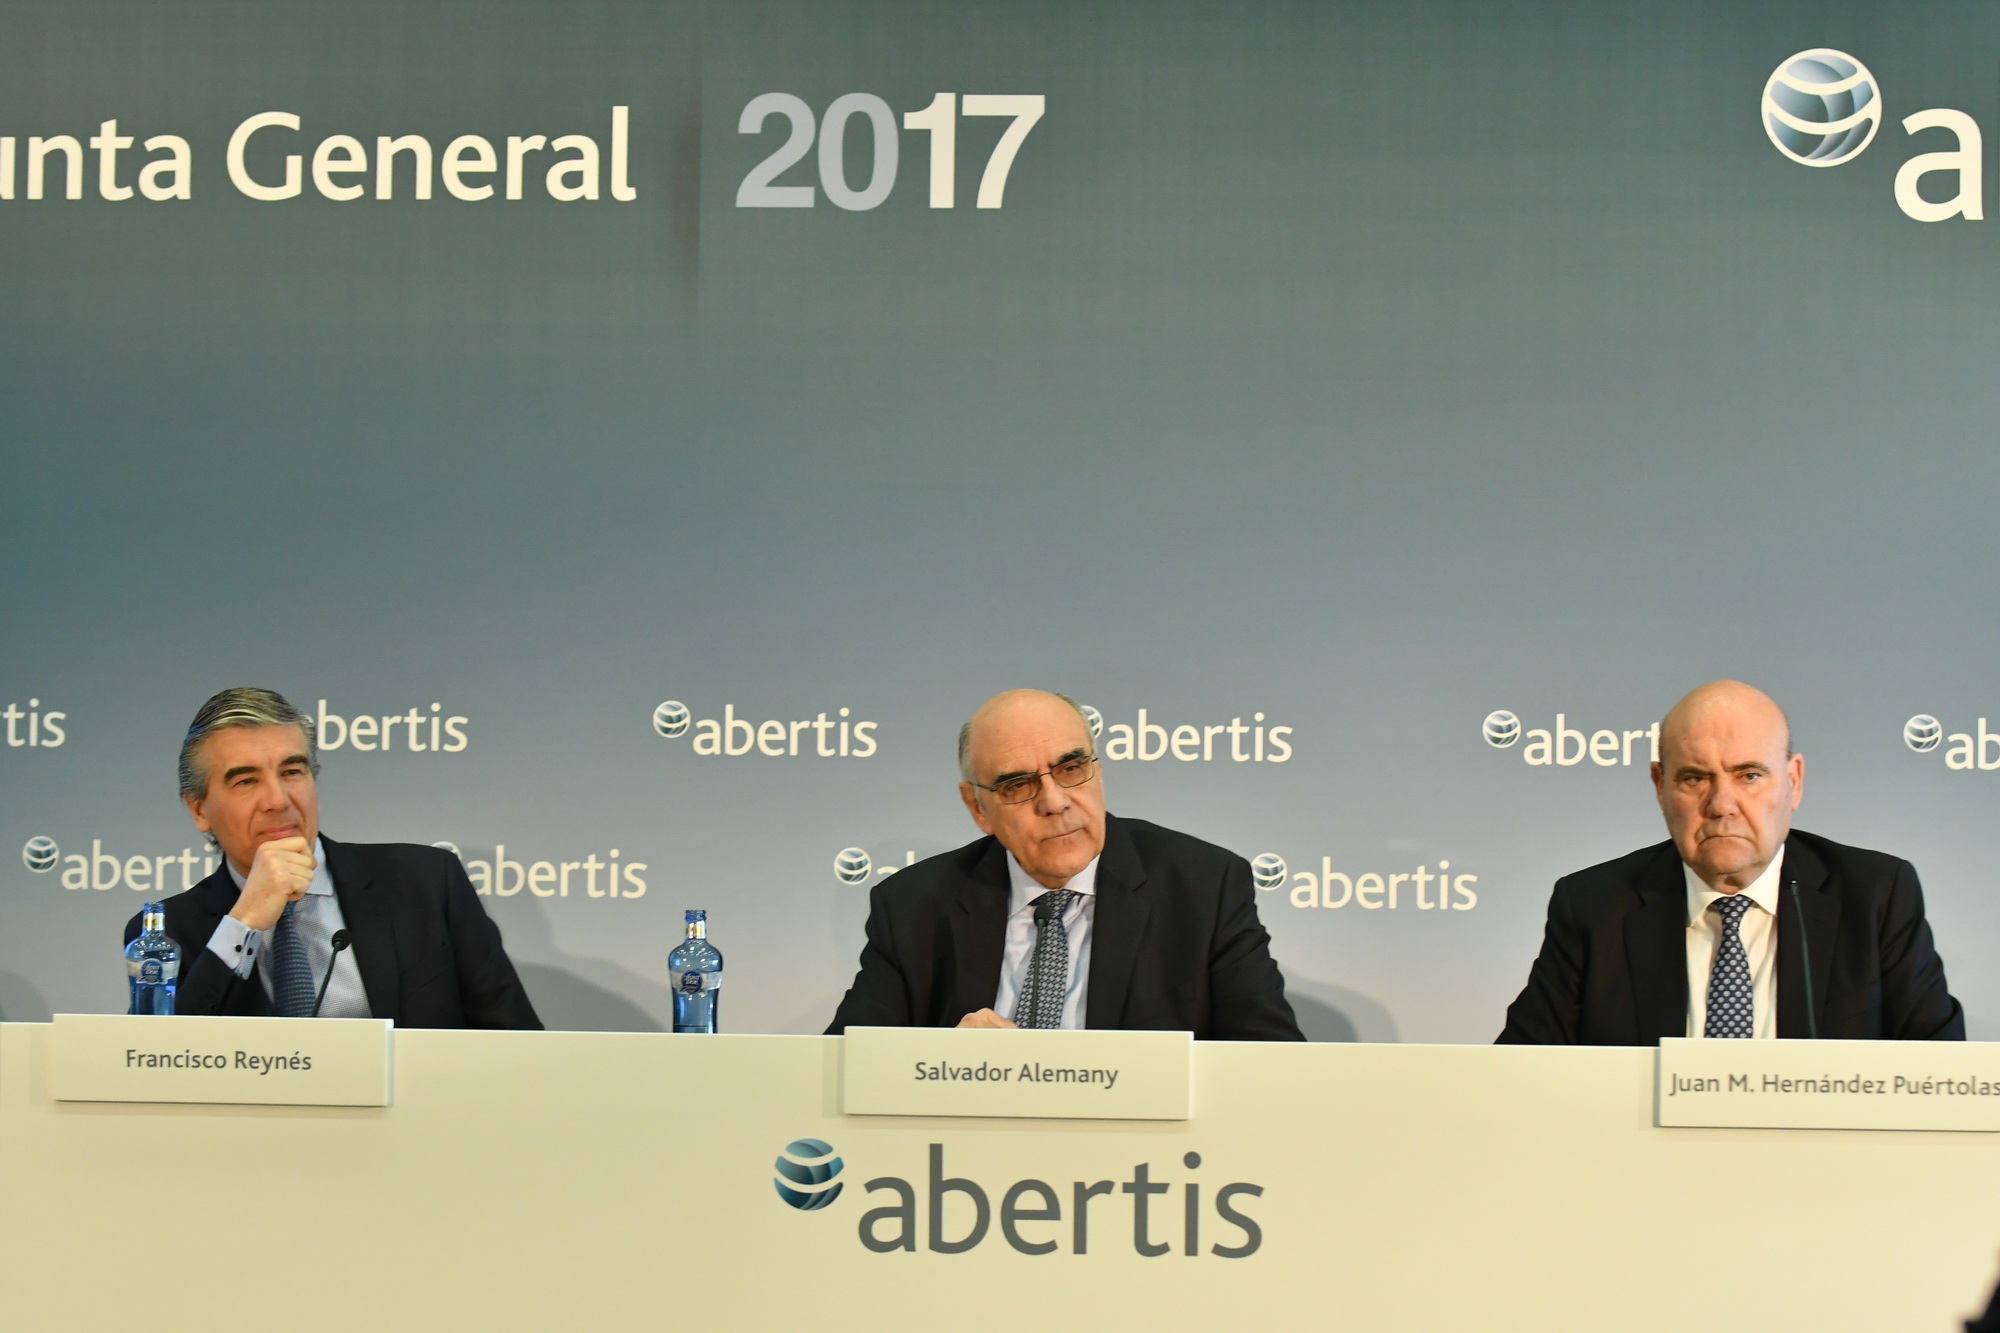 Abertis closed 2016 with solid results, new countries in its portfolio and a strengthened position in established markets such as France and Chile